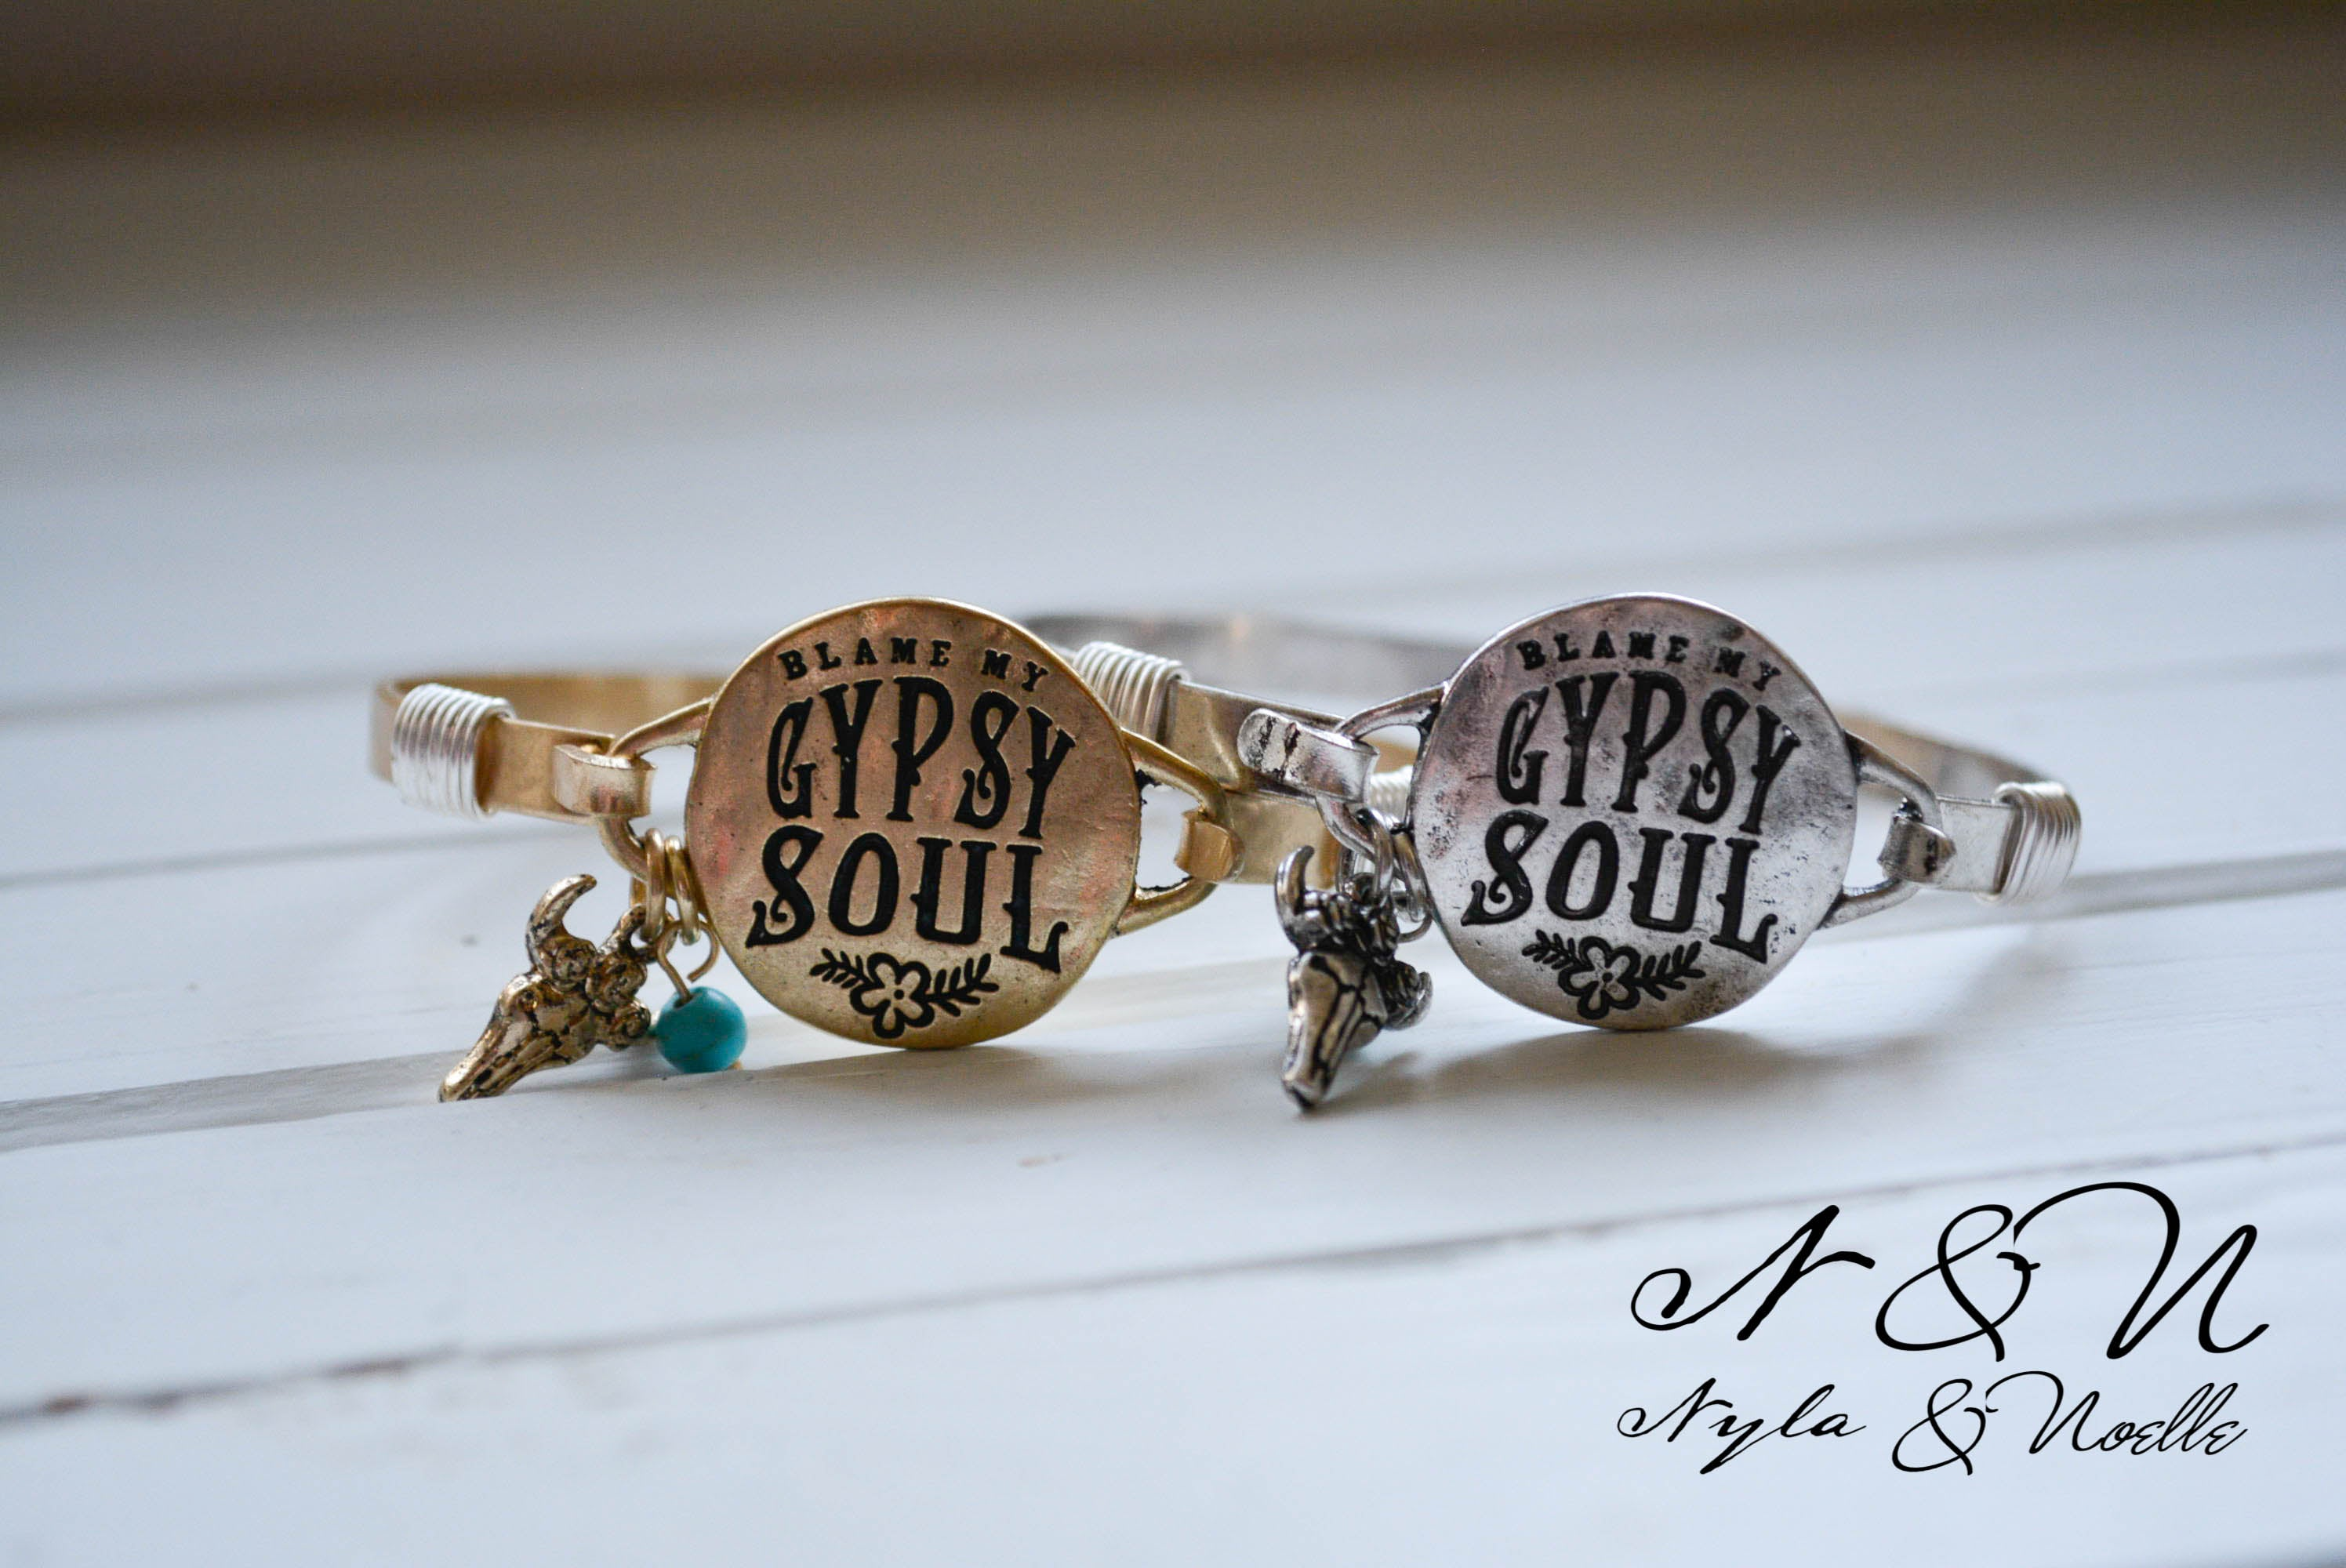 BLAME MY GYPSY SOUL - Antique Gold Tone Bangle